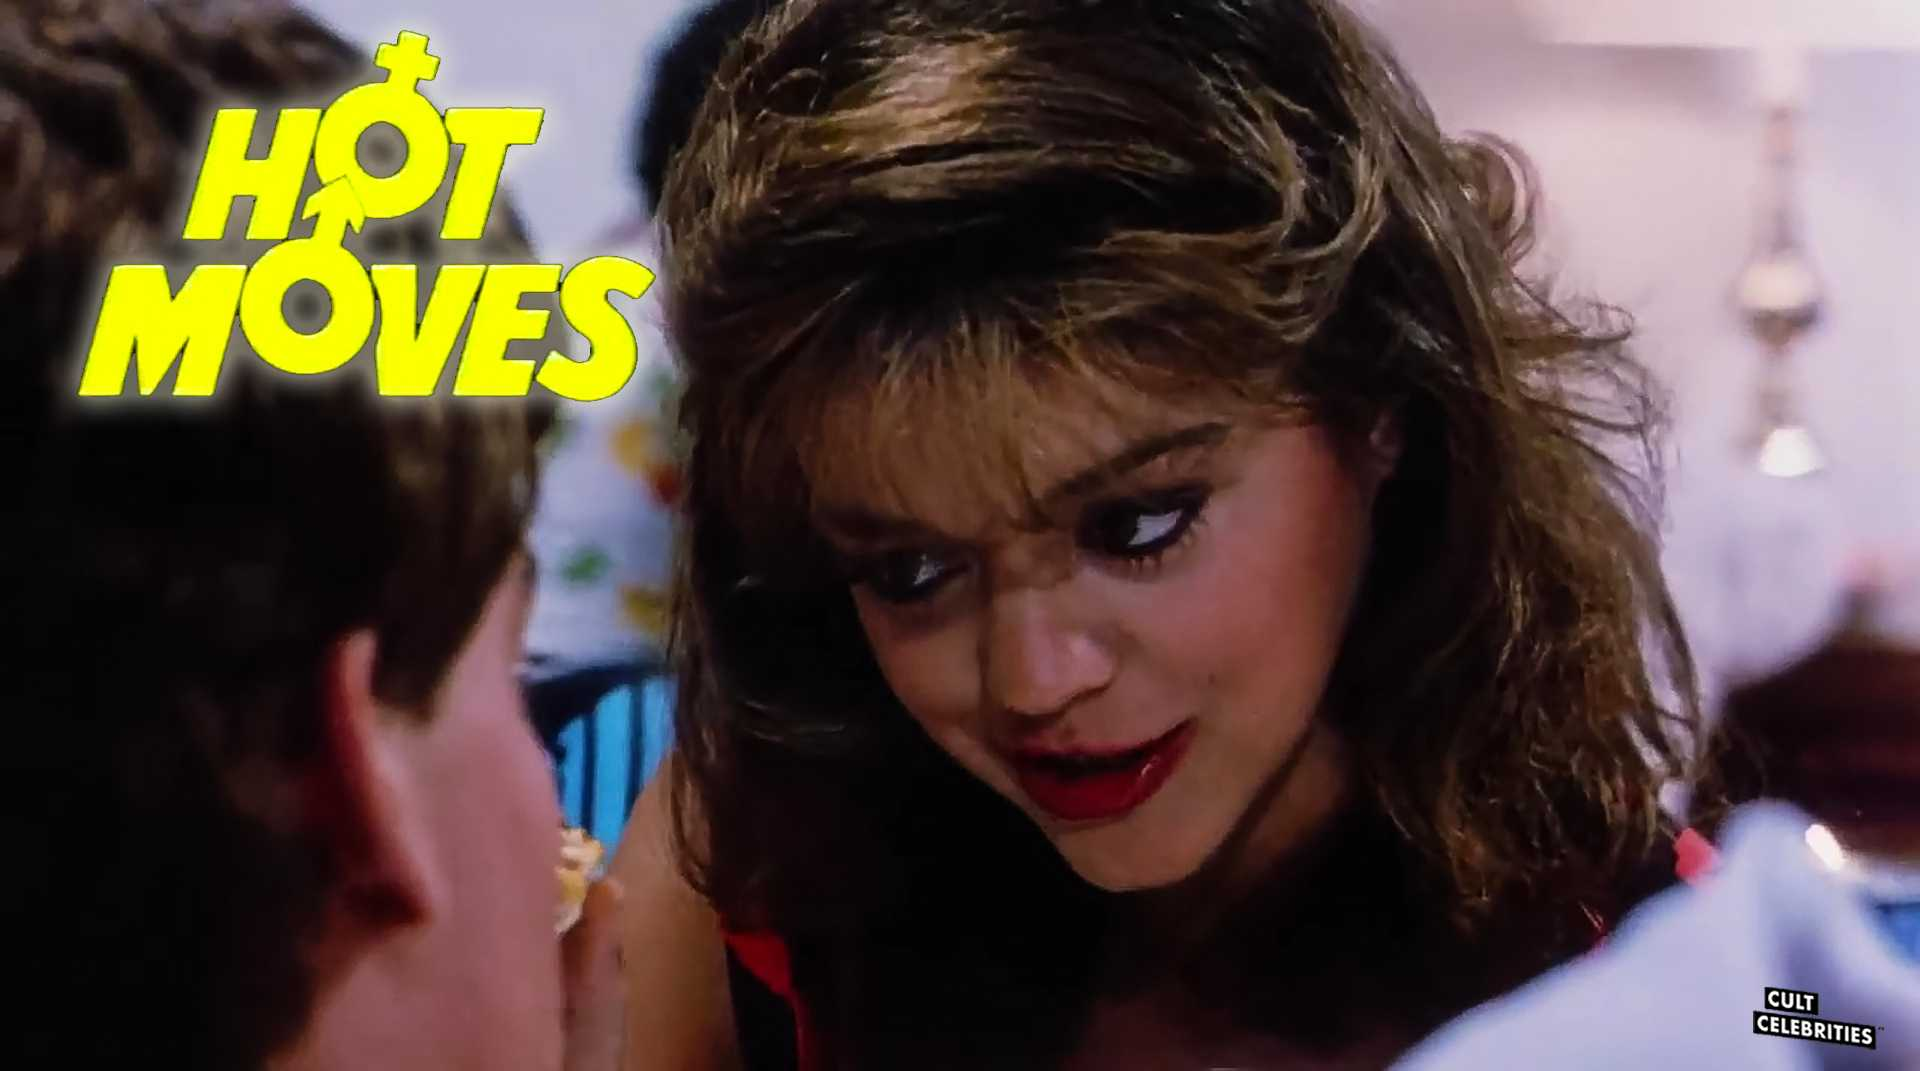 Debi Richter in Hot Moves (1984)